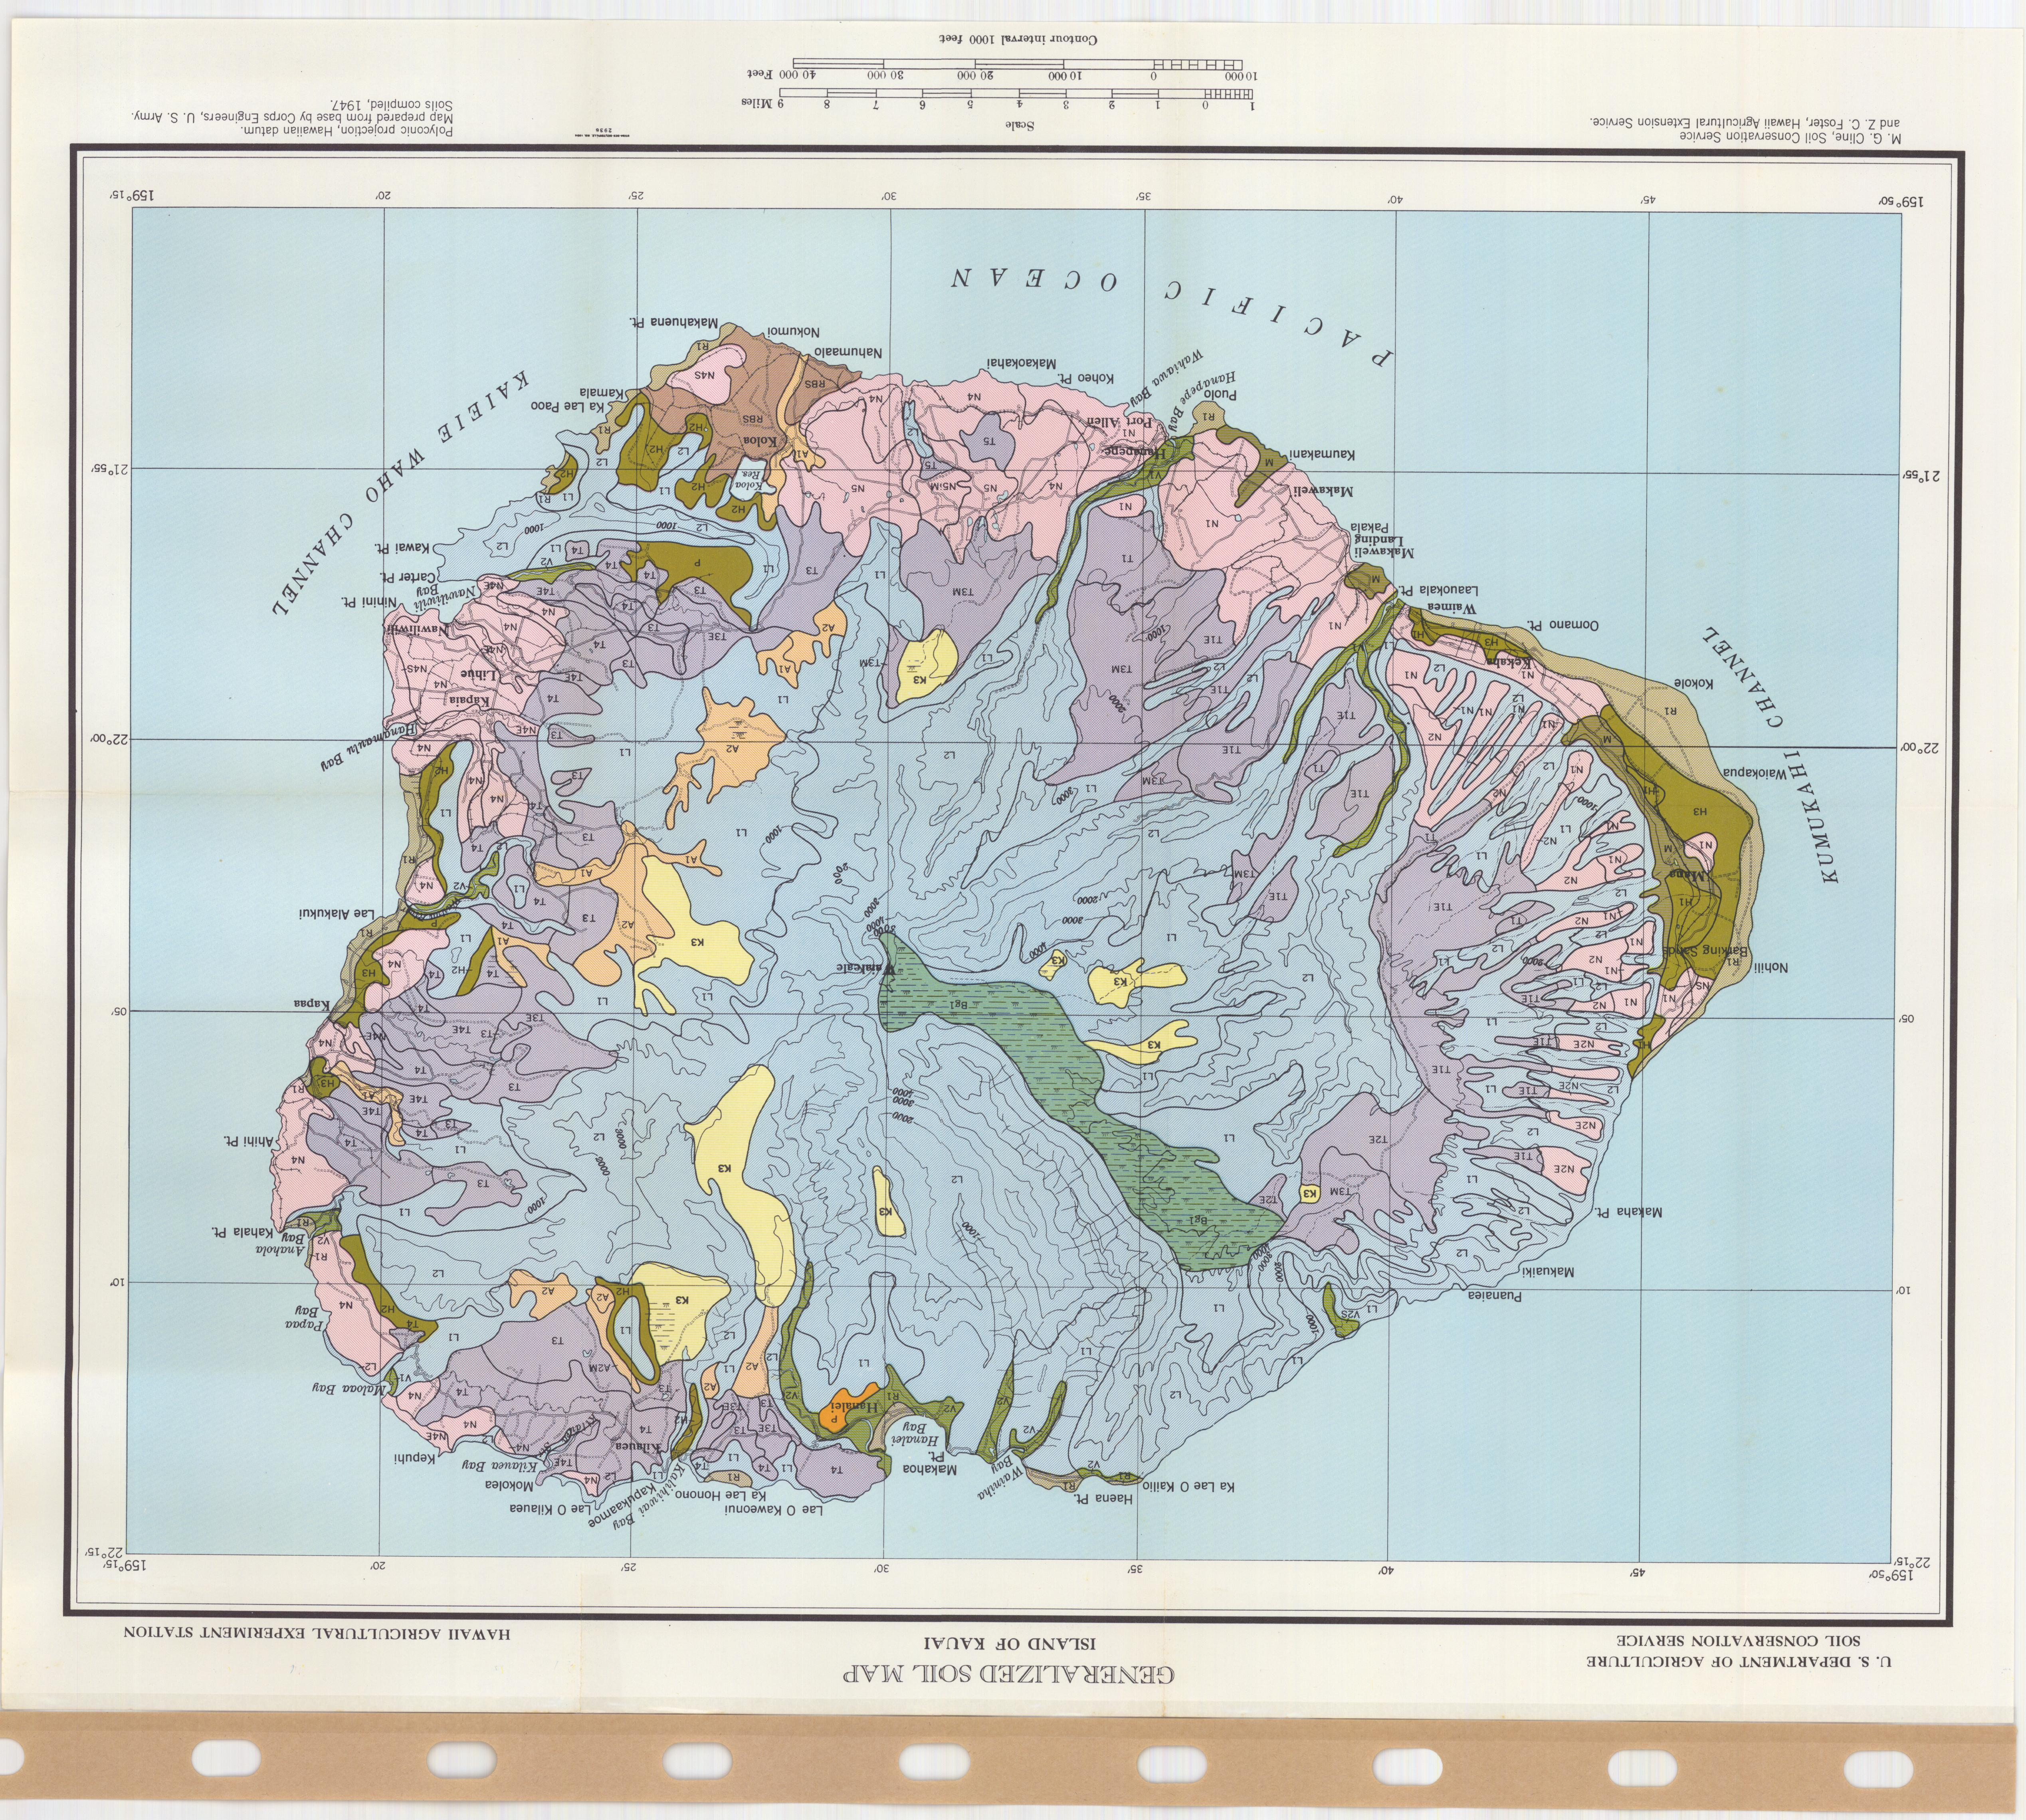 Generalized Soil Map Island Of Kauai - ESDAC - European Commission on map of glasgow, map of johannesburg, map of cedar rapids, map of miami, map of madrid, map of lansing, map of norfolk, map of new york, map of salt lake city, map of kona, map of lanai city, map of porto, map of florence, map of kahului, map of ontario, map of hilo, map of honolulu, map of singapore, map of hawaiian islands, map of cancun,